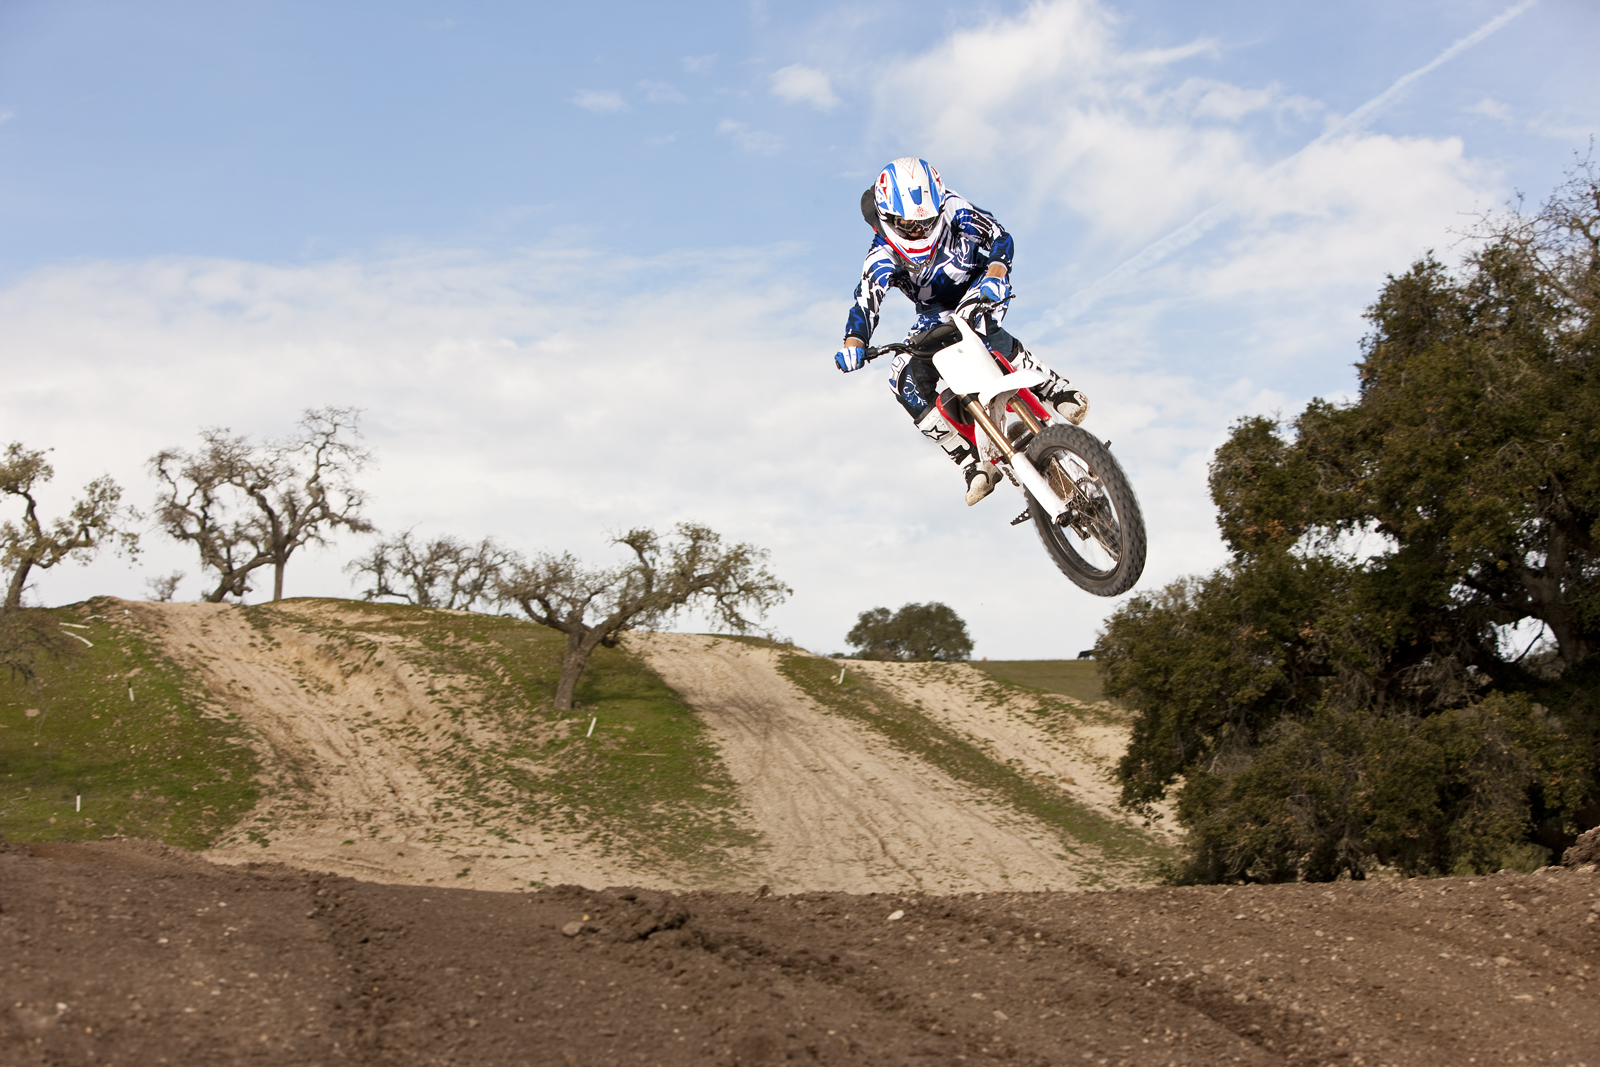 2010 Zero MX Electric Motorcycle: Zaca Station - Big Red Bike Jump